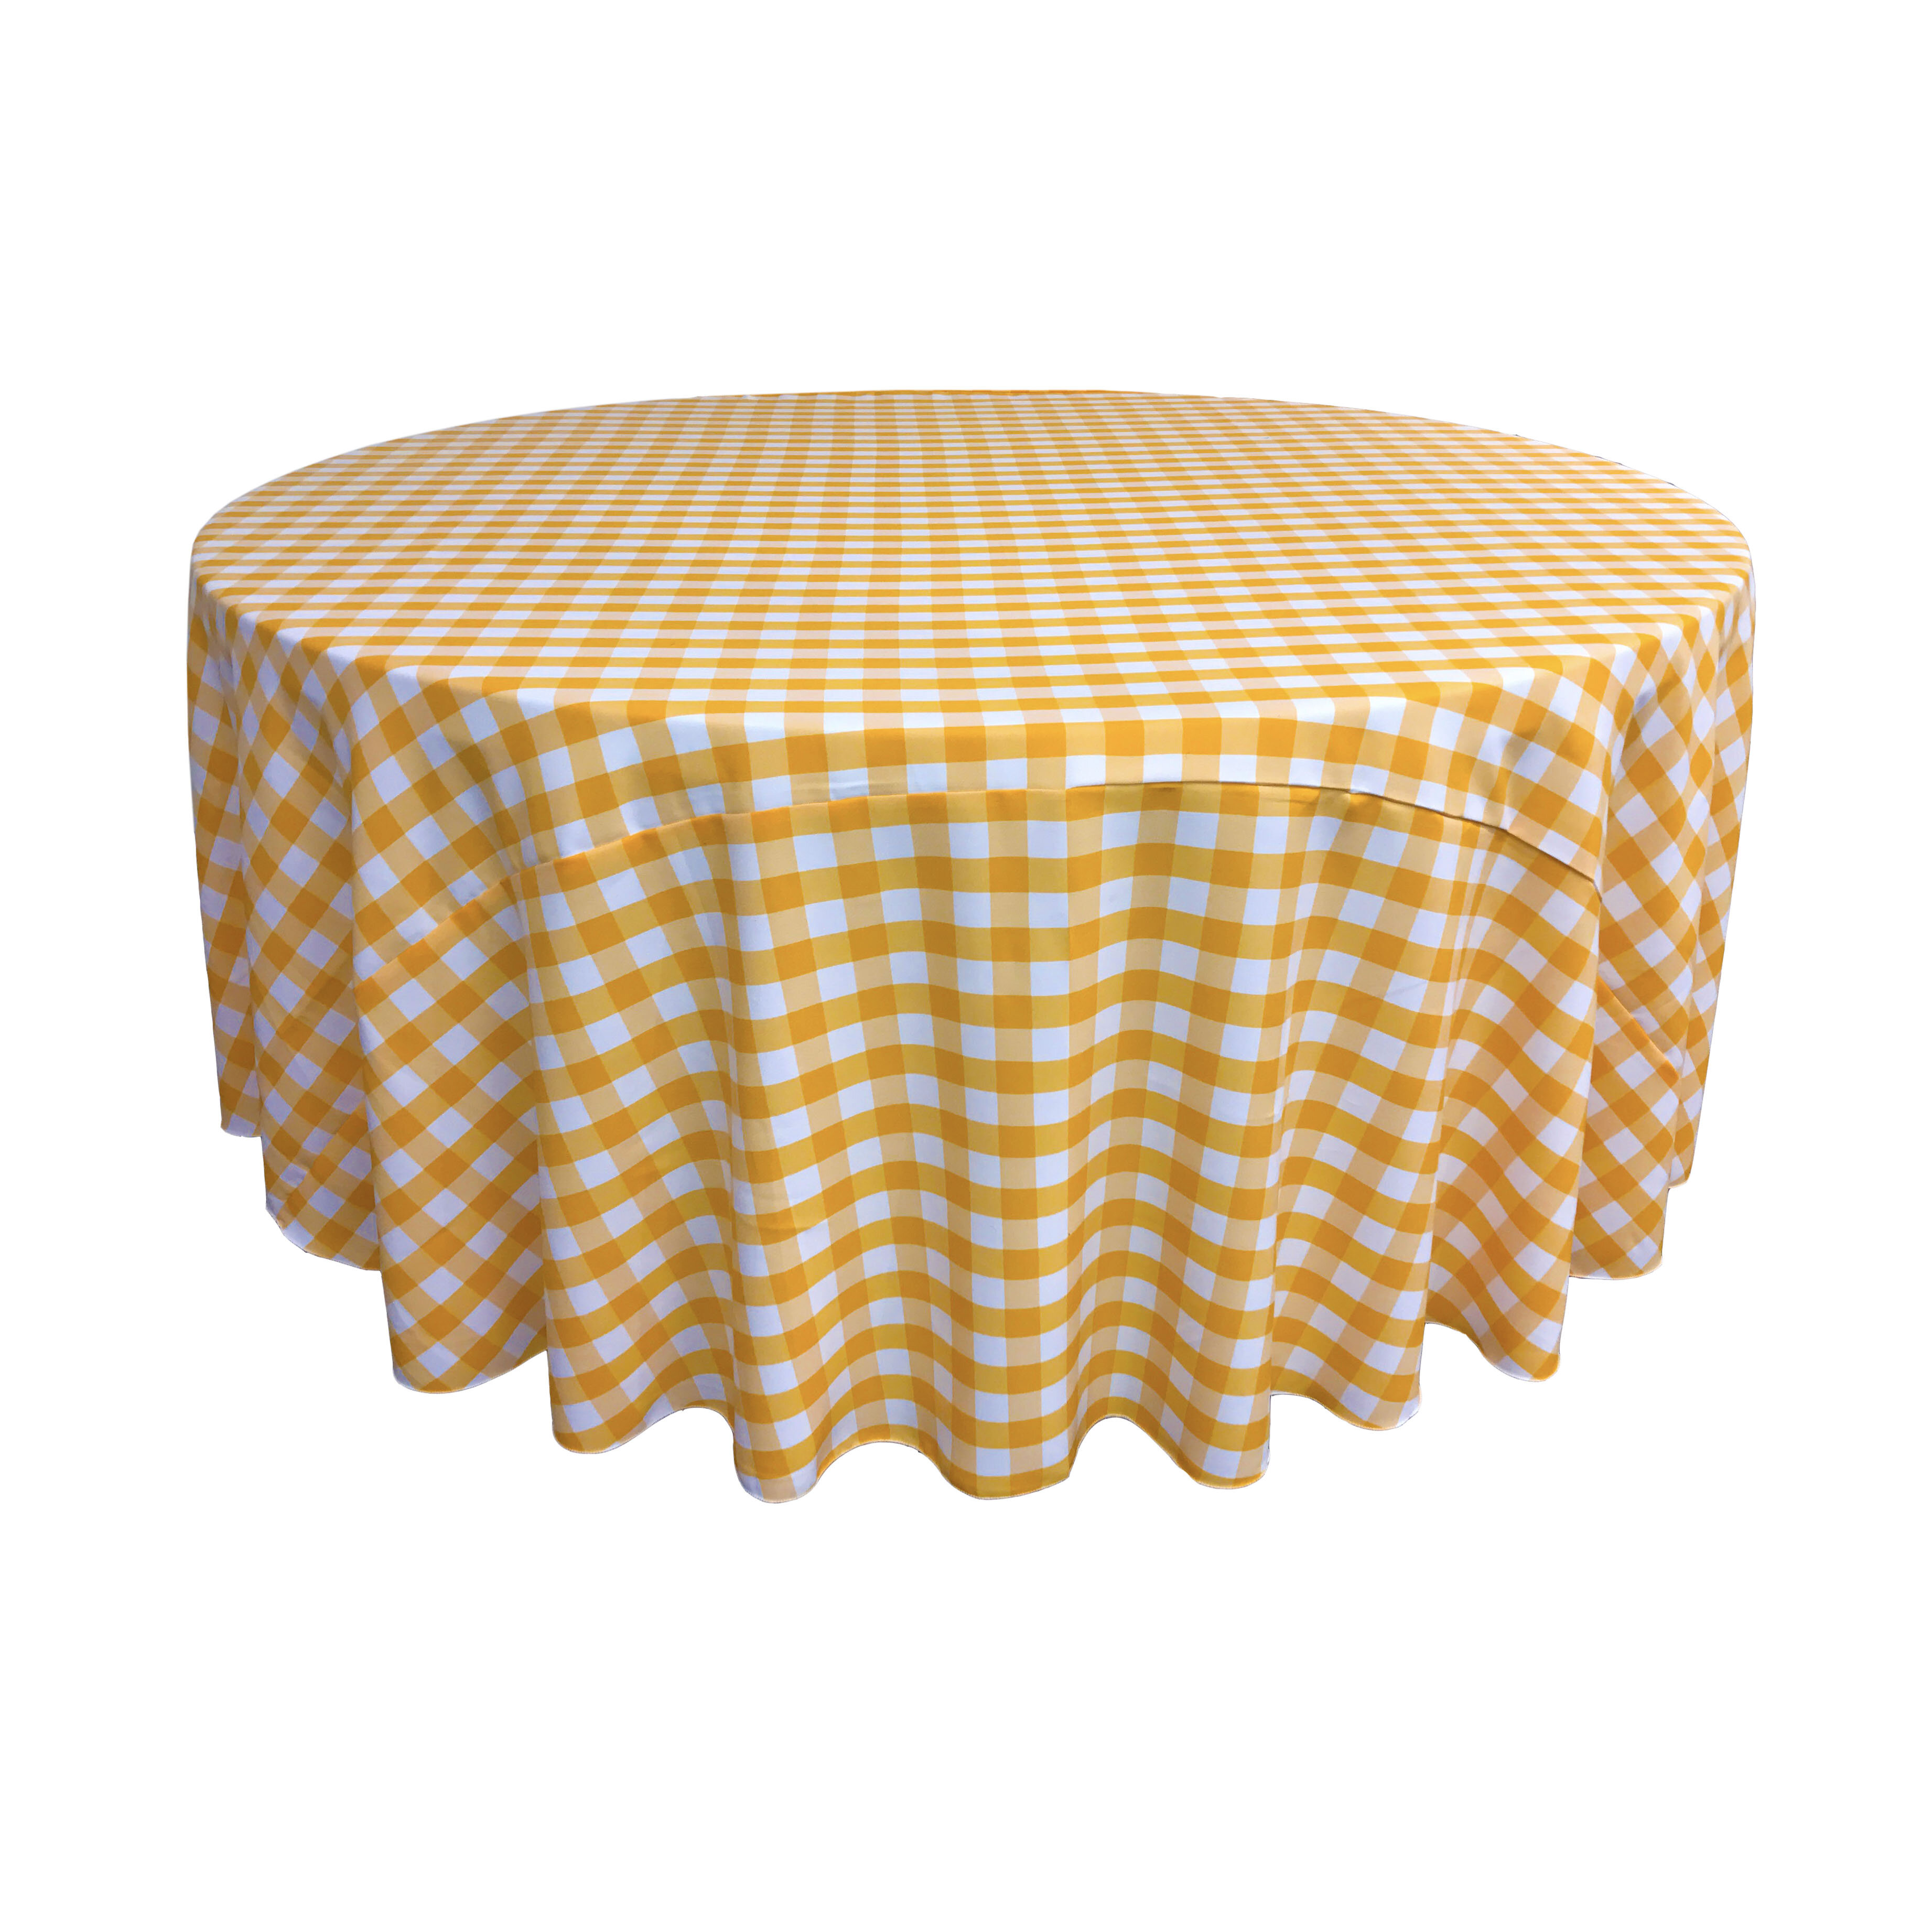 Round Yellow Tablecloths Up To 65 Off Until 11 20 Wayfair Wayfair